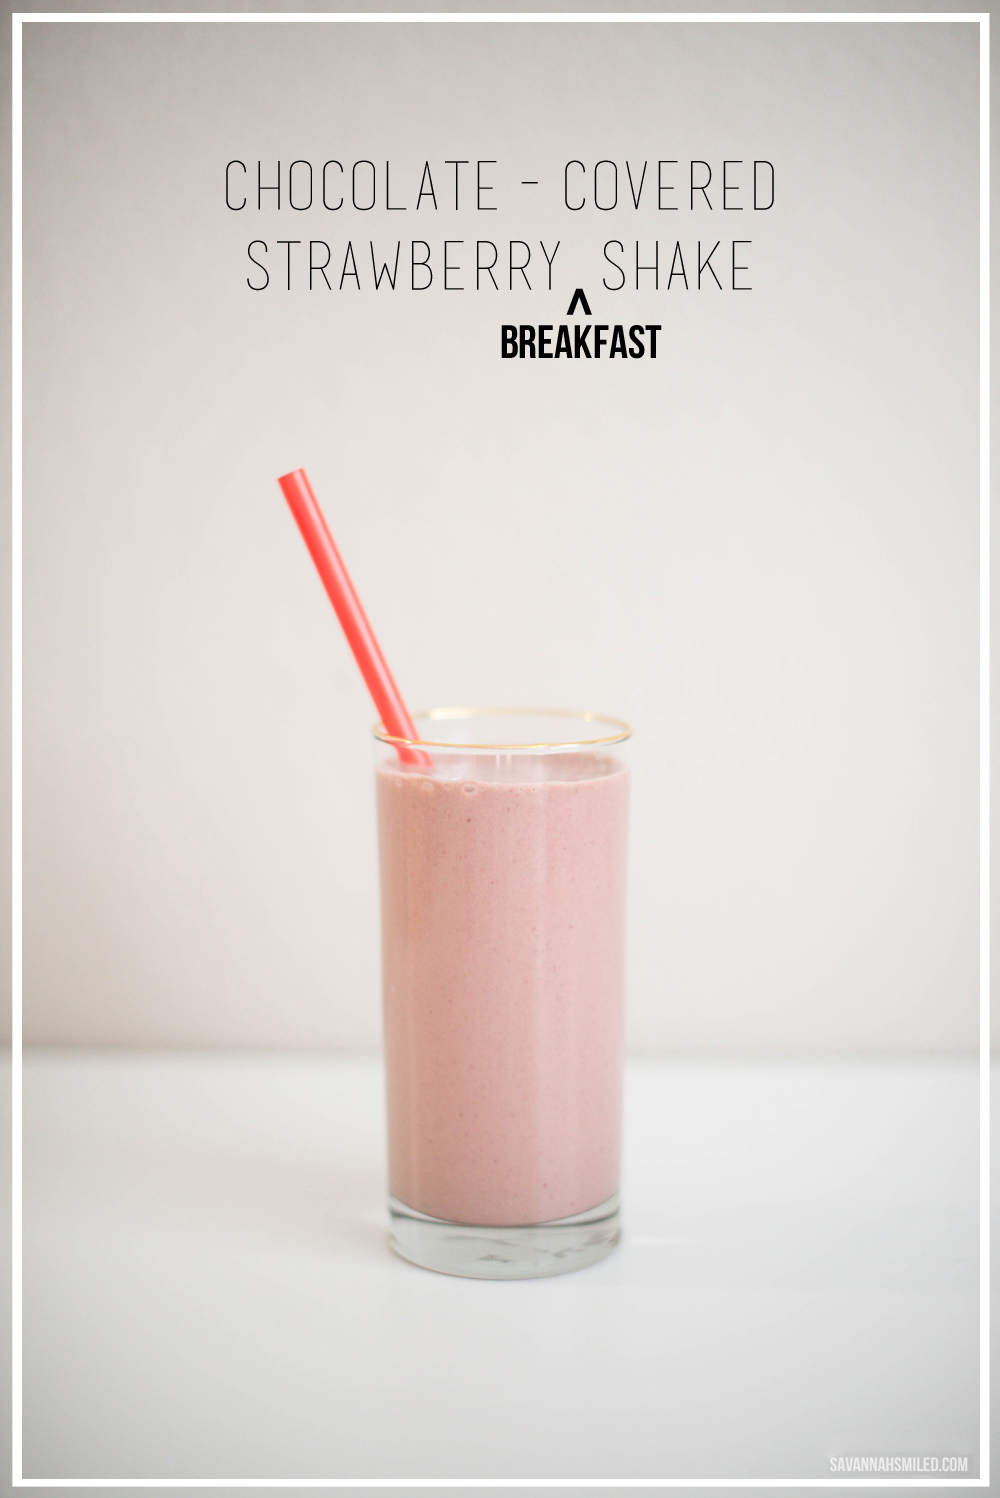 breakfast-chocolate-dipped-strawberry-shake-6_edited-1.jpg